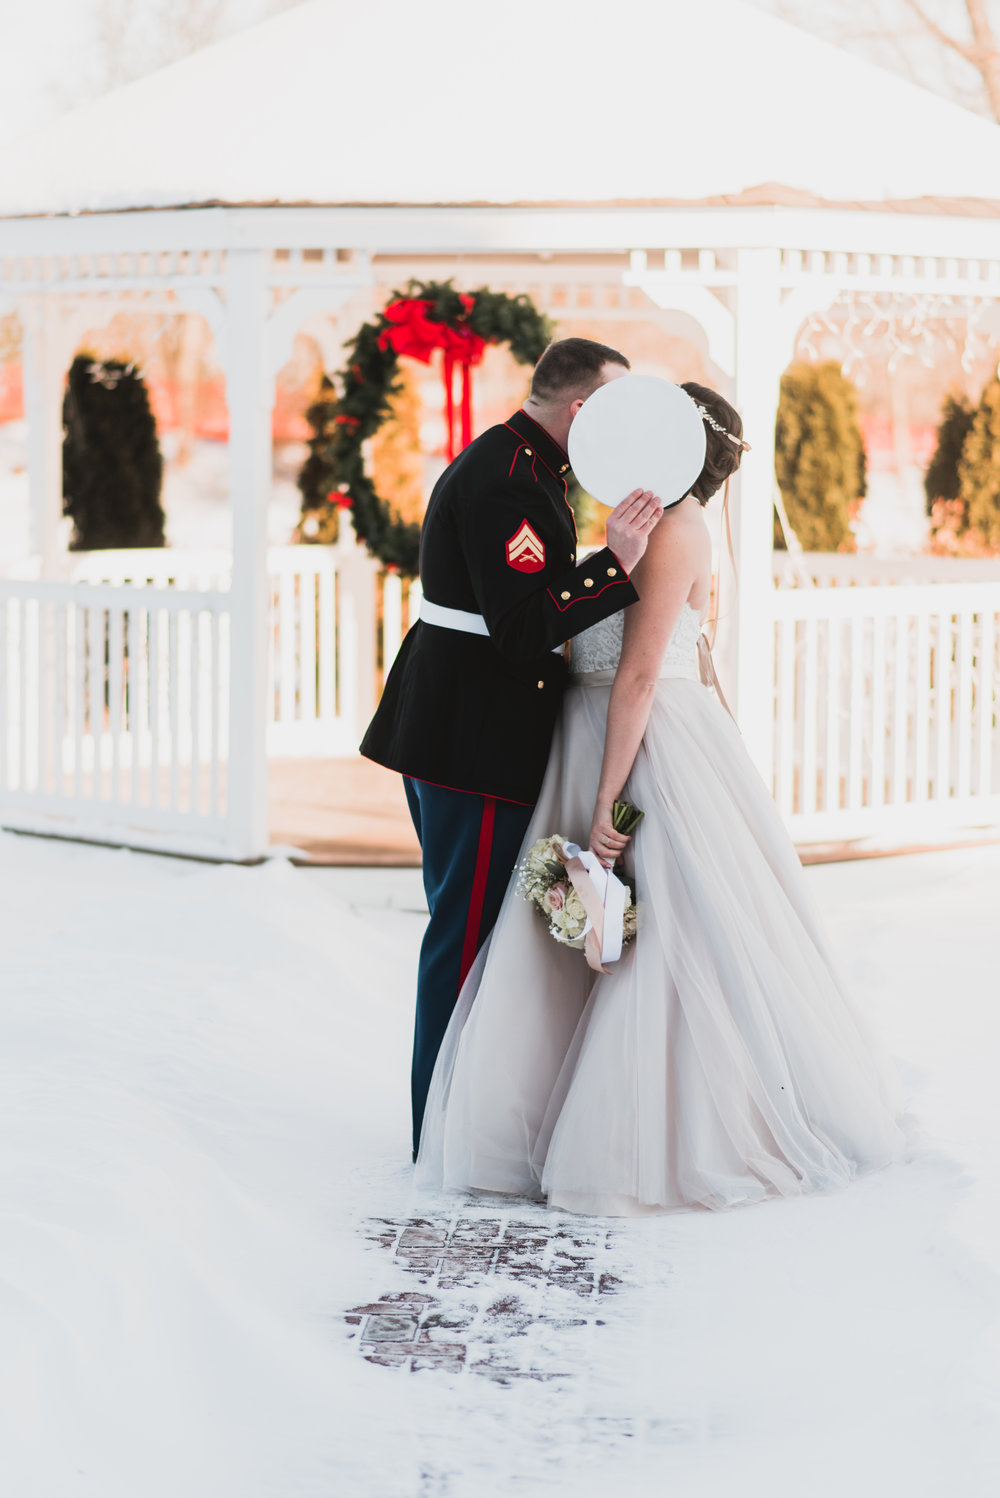 Brid eand groom kissing behind the hat